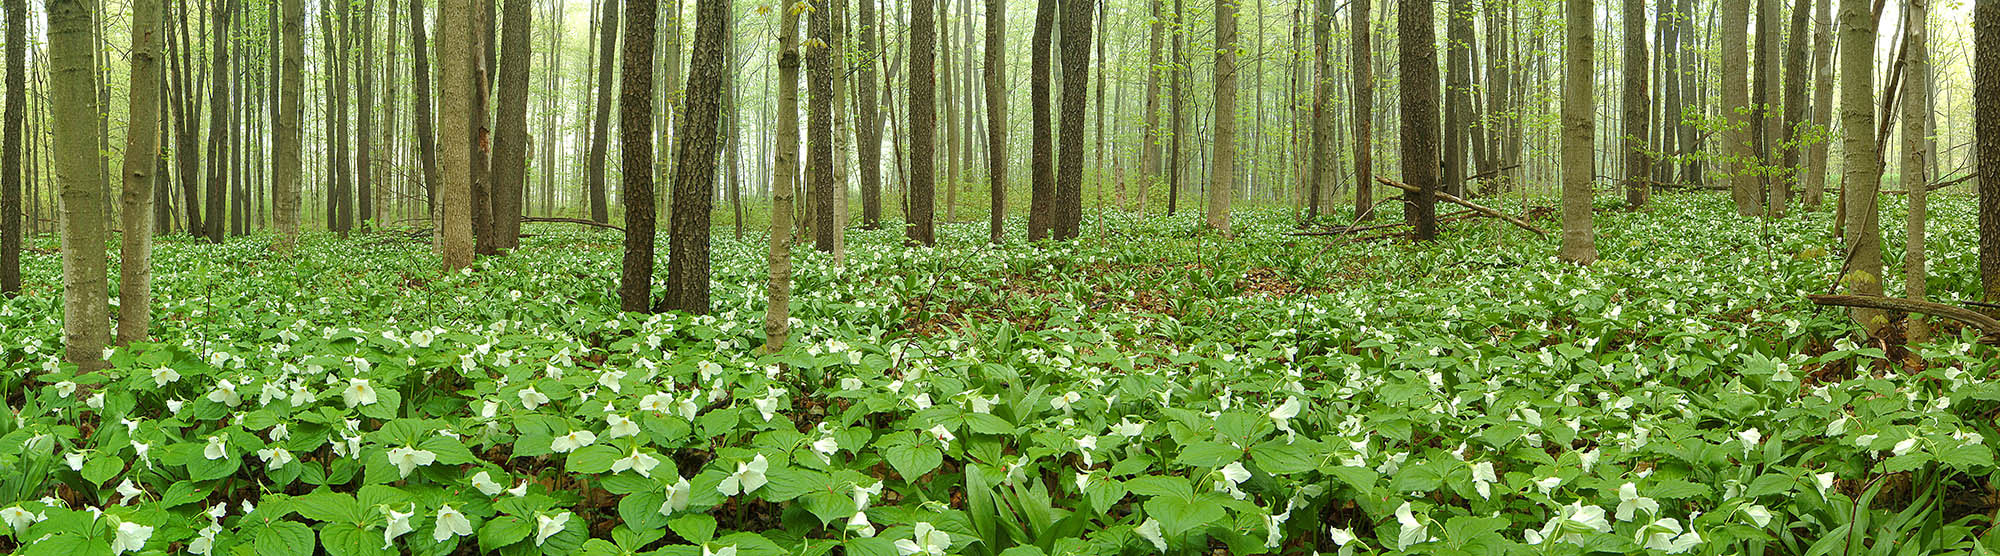 Photograph Trillions Of Trilliums by Charles St. Charles on 500px